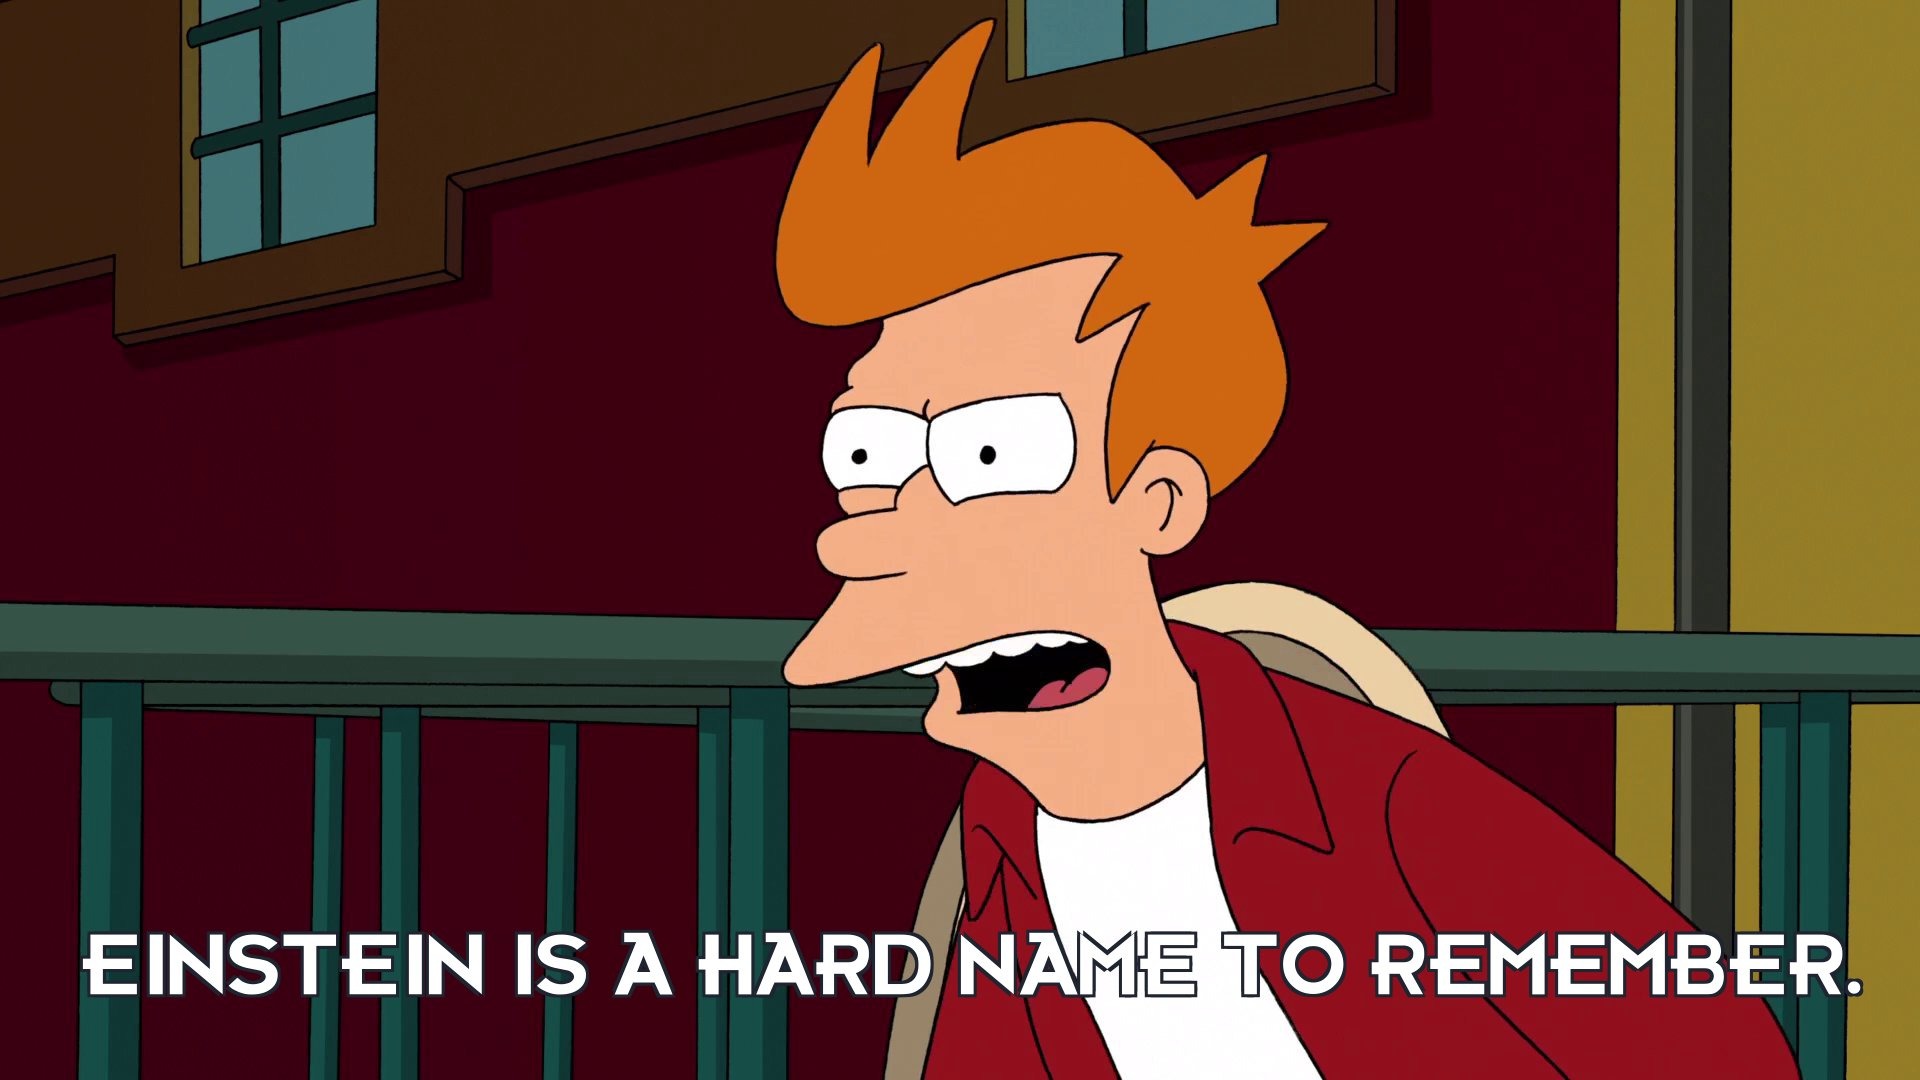 Philip J Fry: Einstein is a hard name to remember.